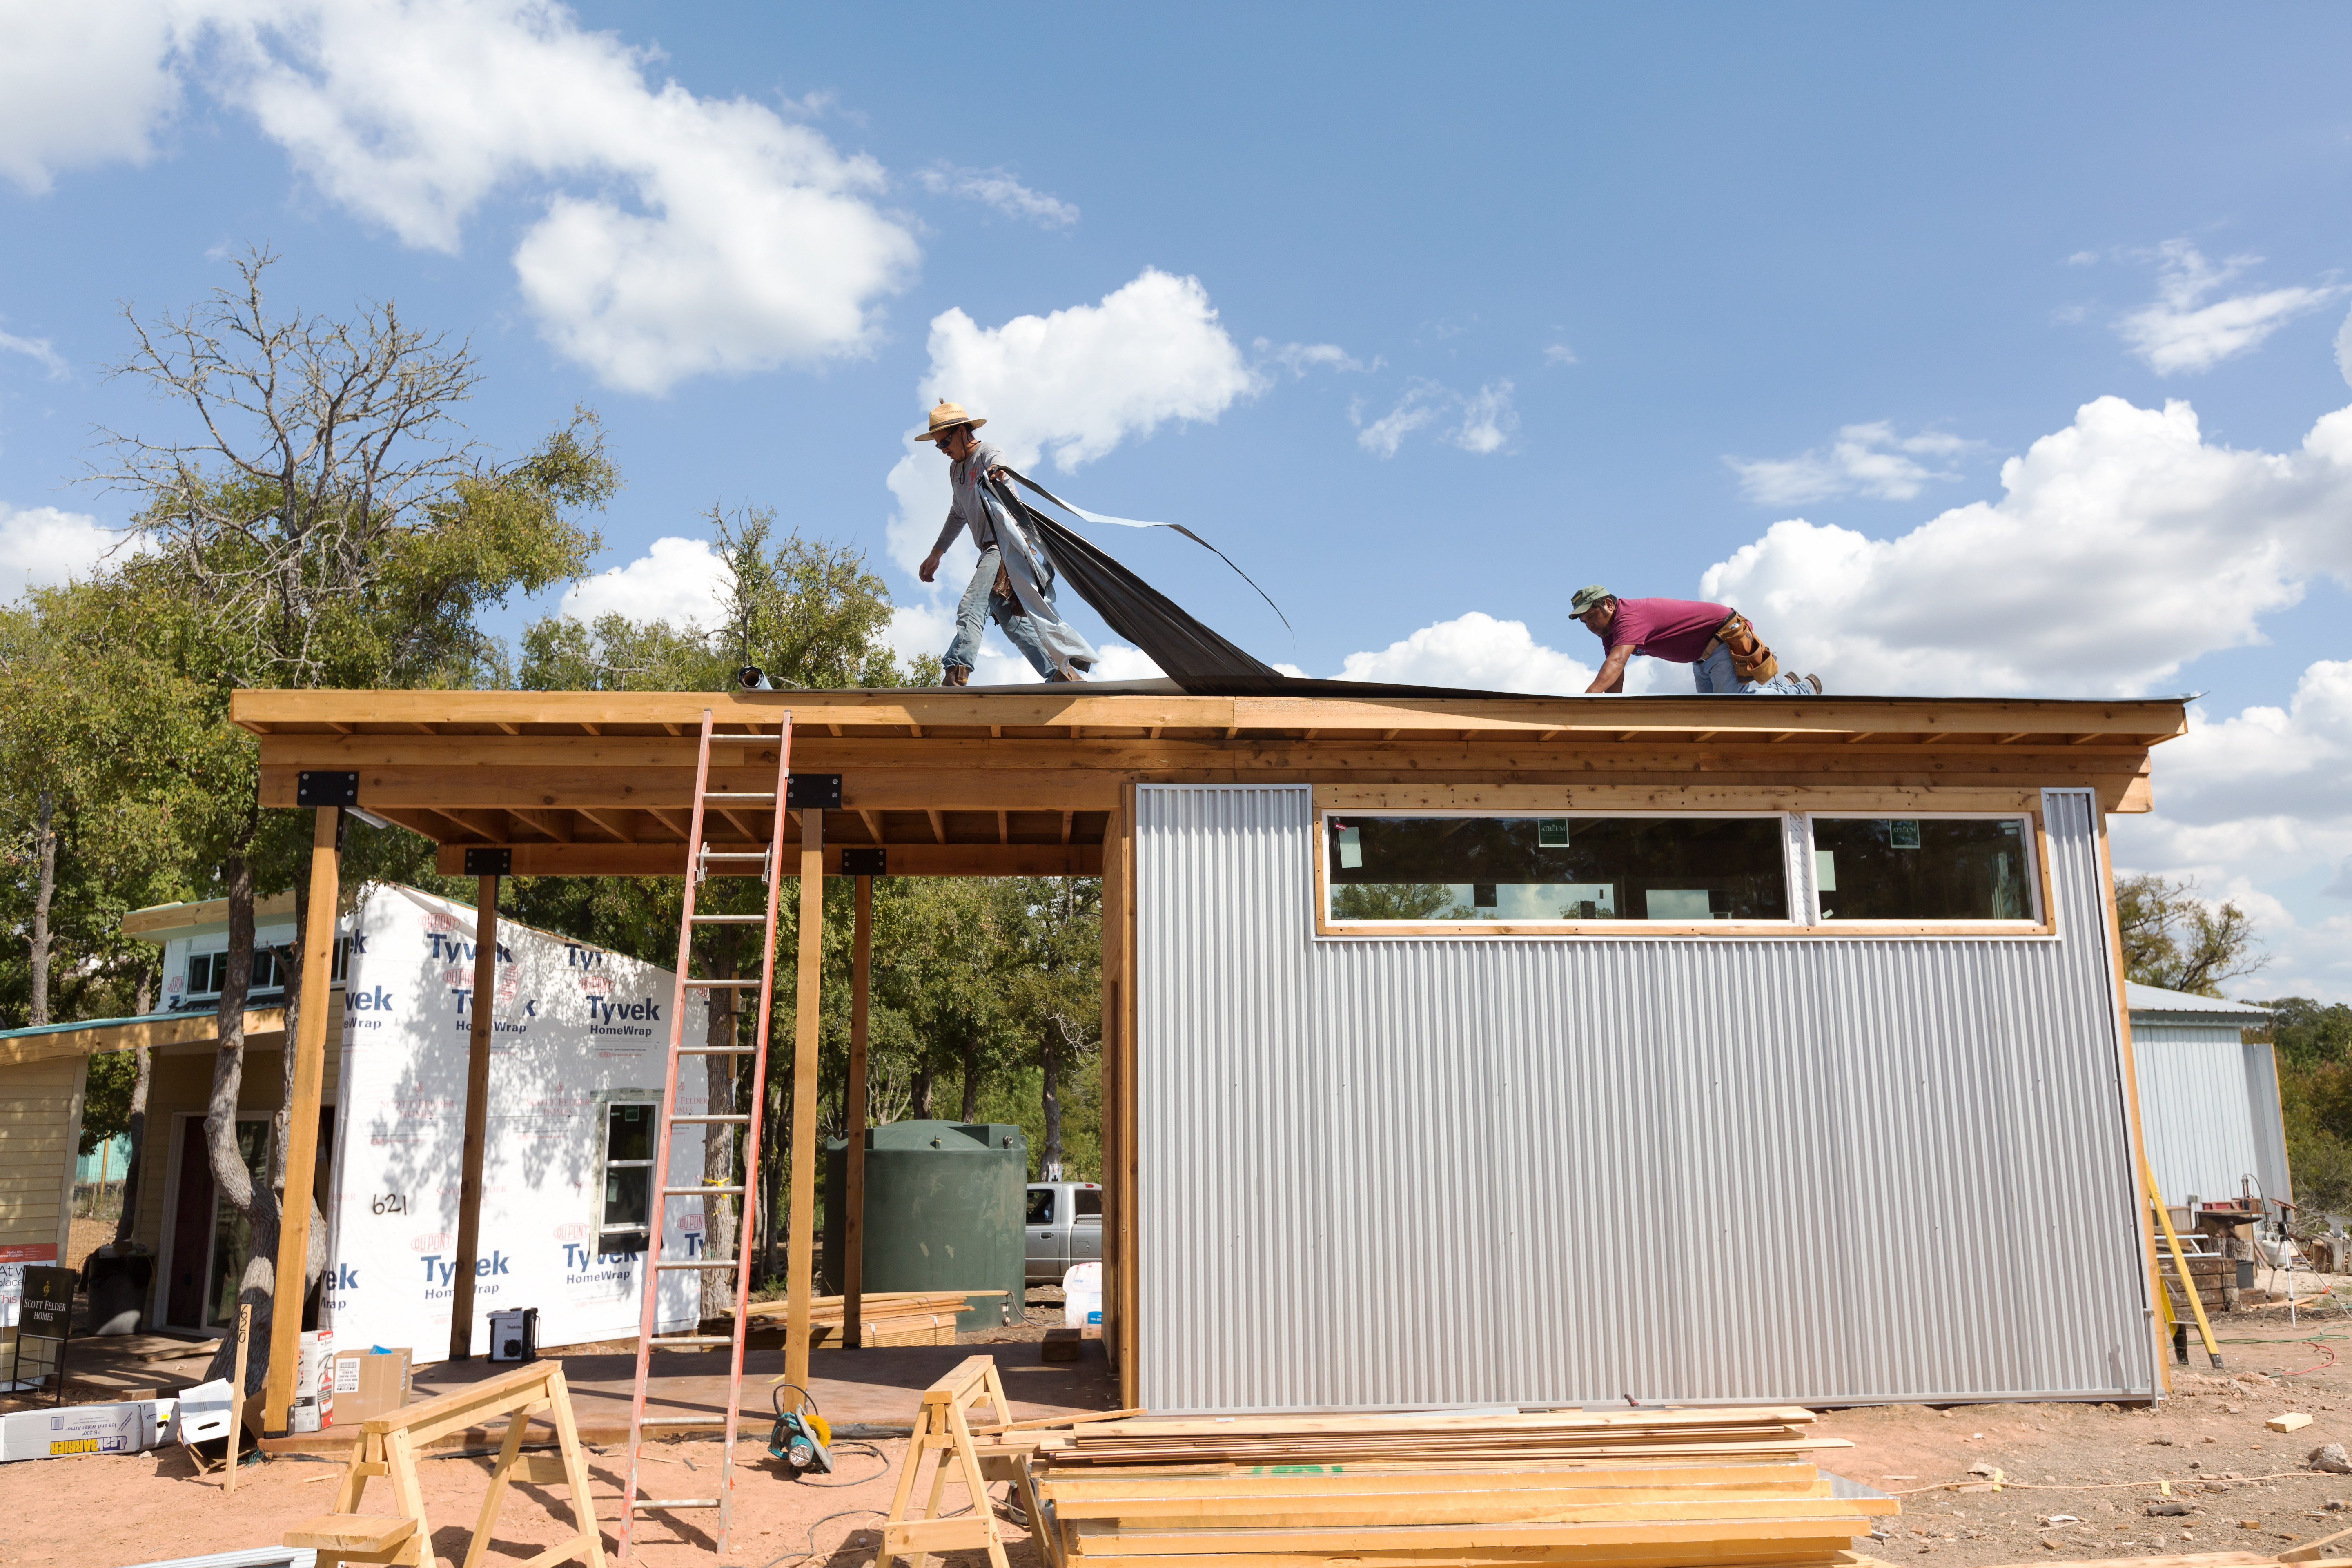 ^ iny Houses in ustin re Helping the Homeless, but It Still akes ...